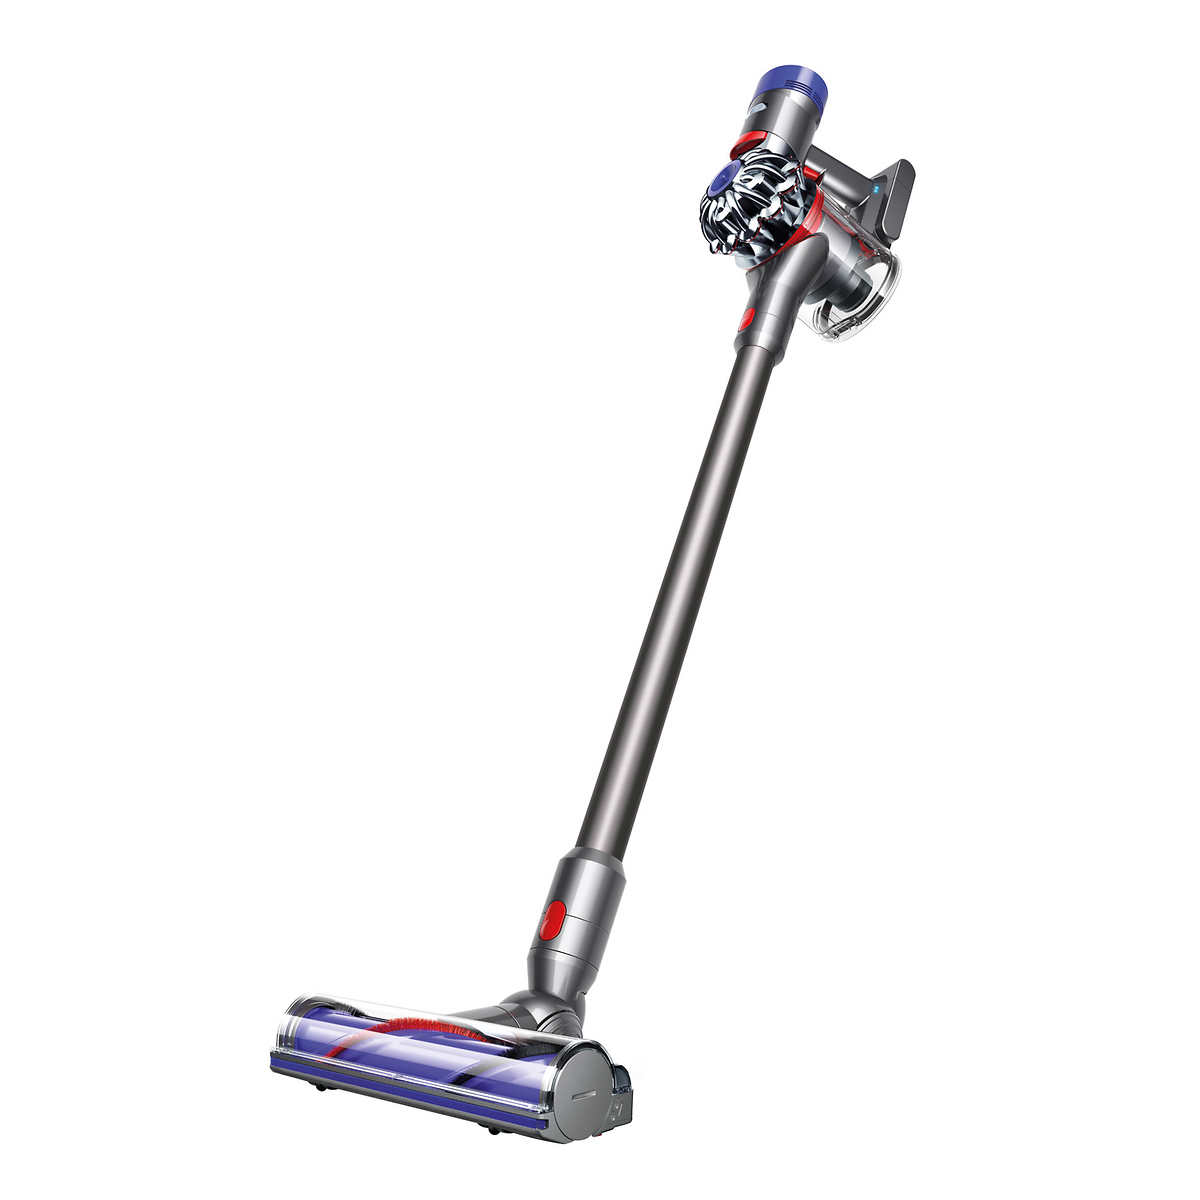 What is the best handheld vacuum cleaner reference com - Member Only Item